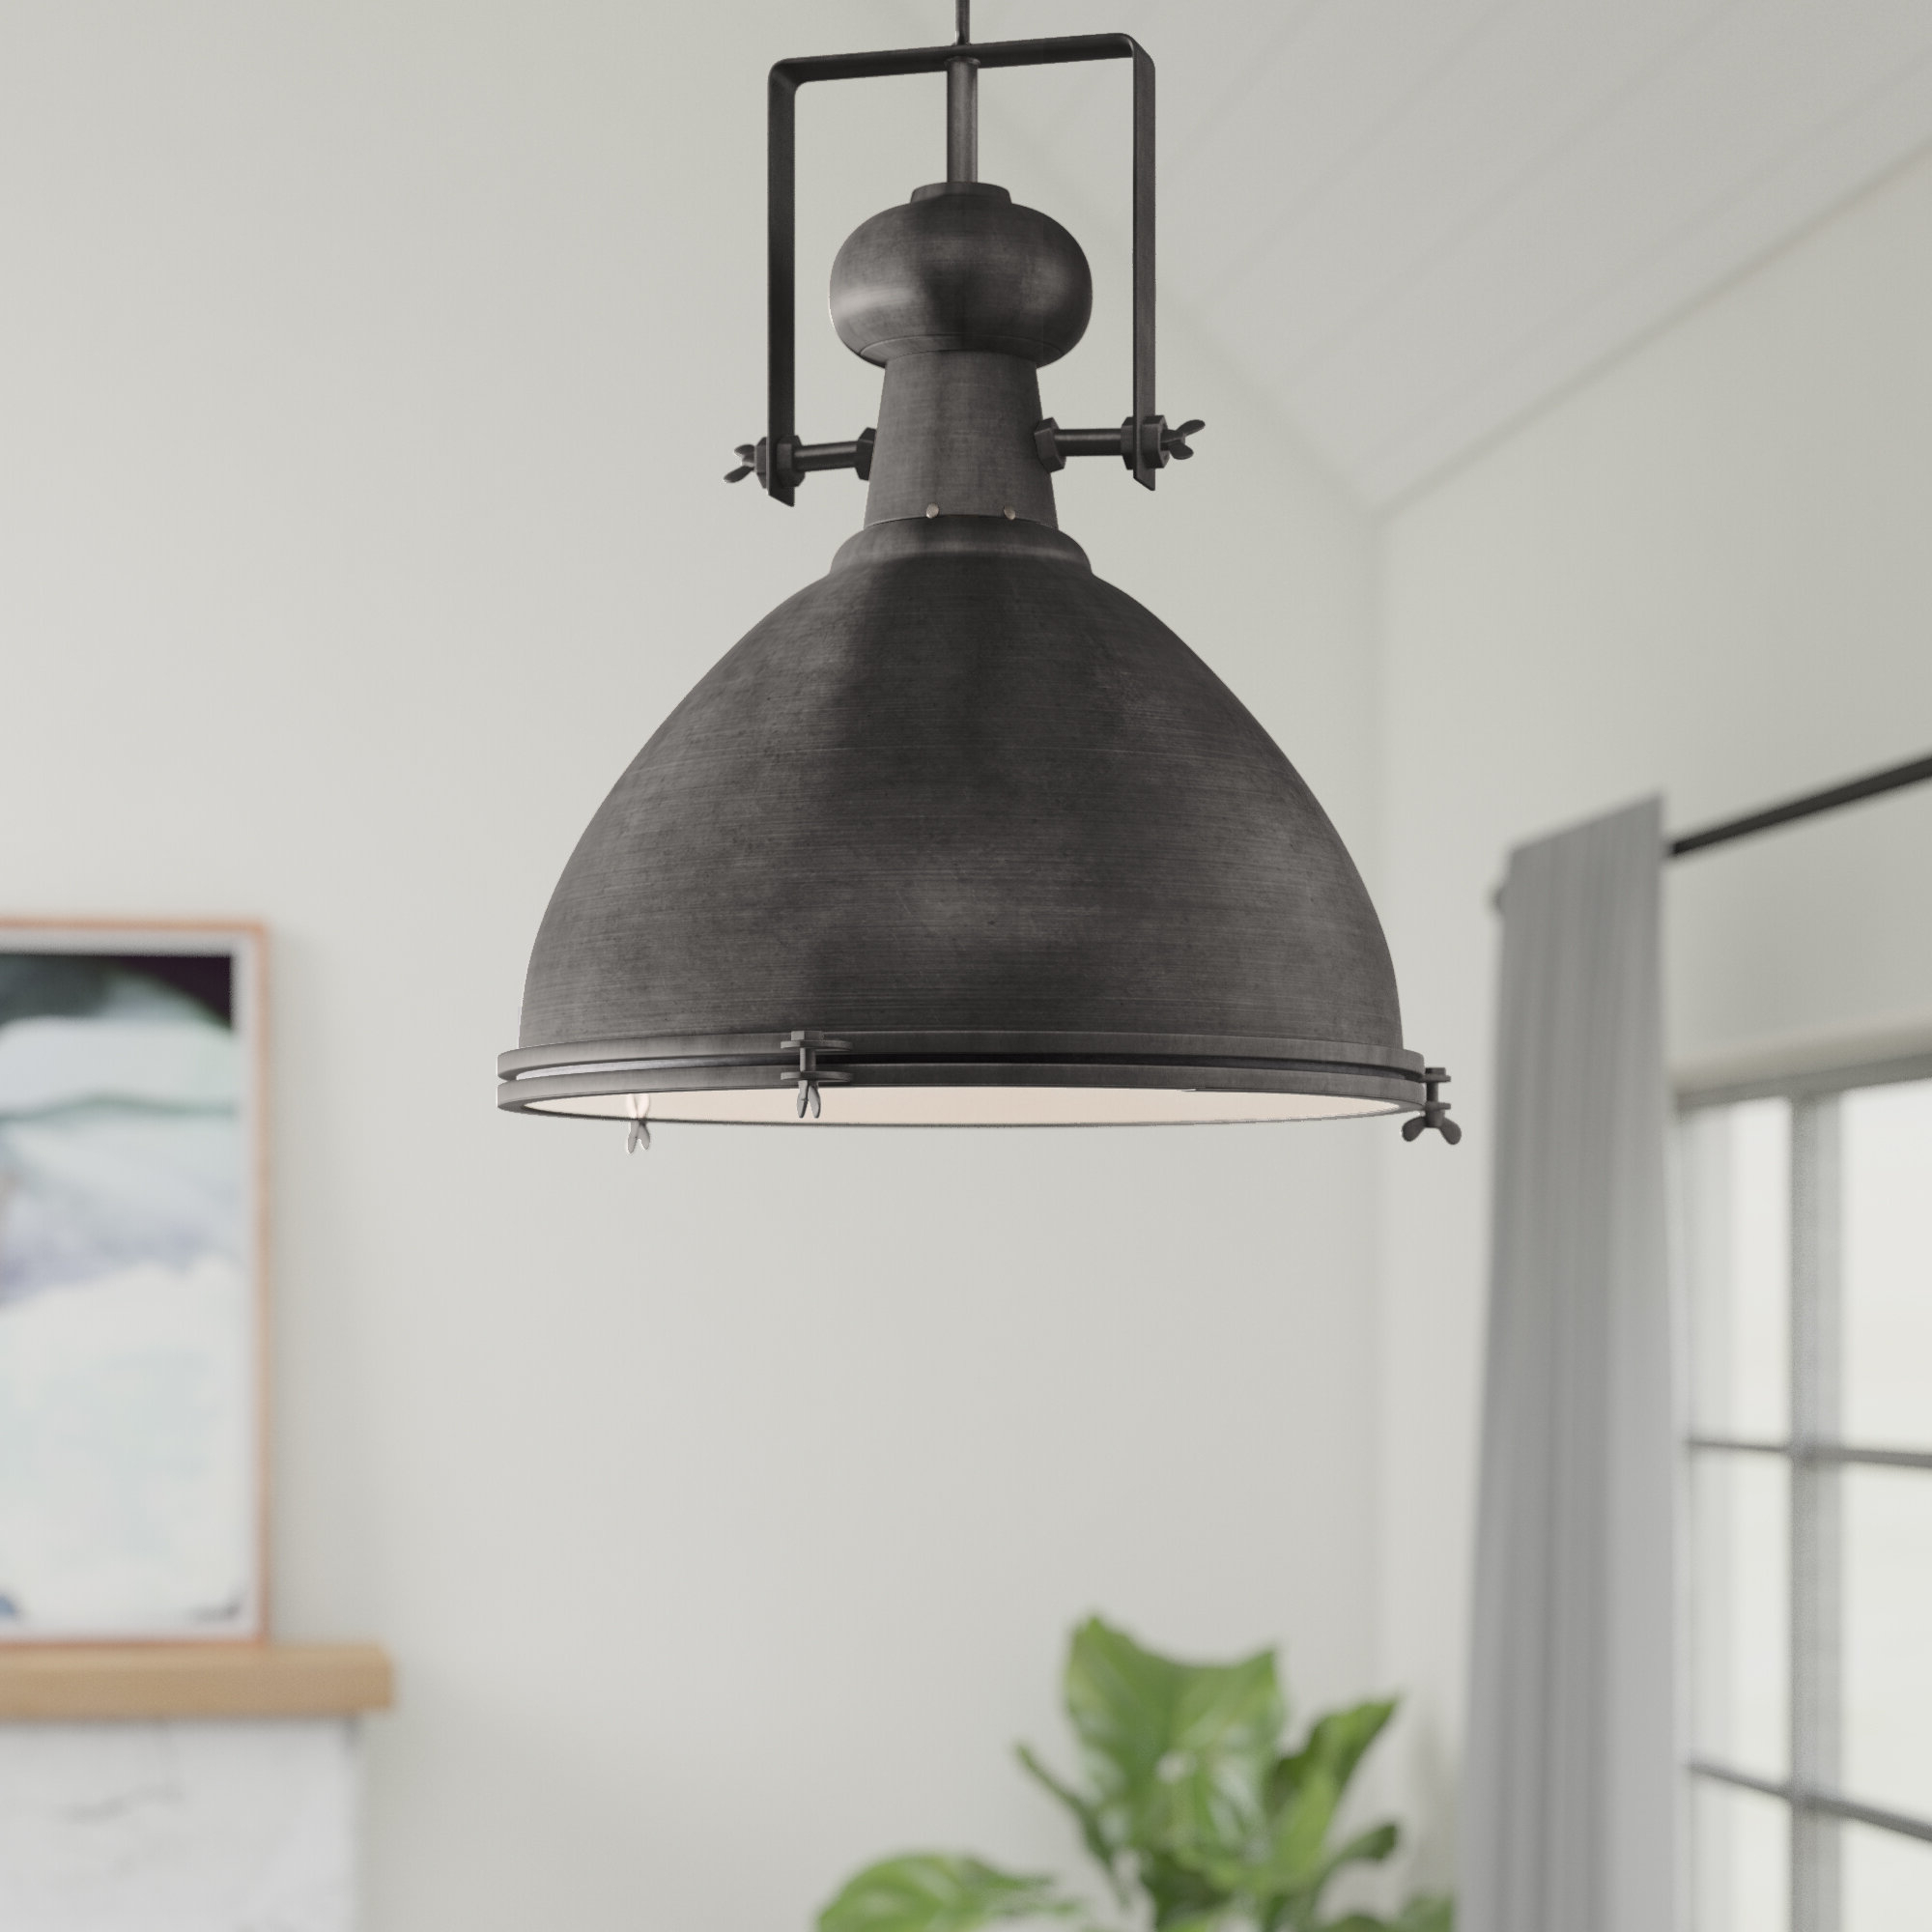 Newest 17 Stories Lavern 1 Light Single Dome Pendant Within Granville 3 Light Single Dome Pendants (View 16 of 20)